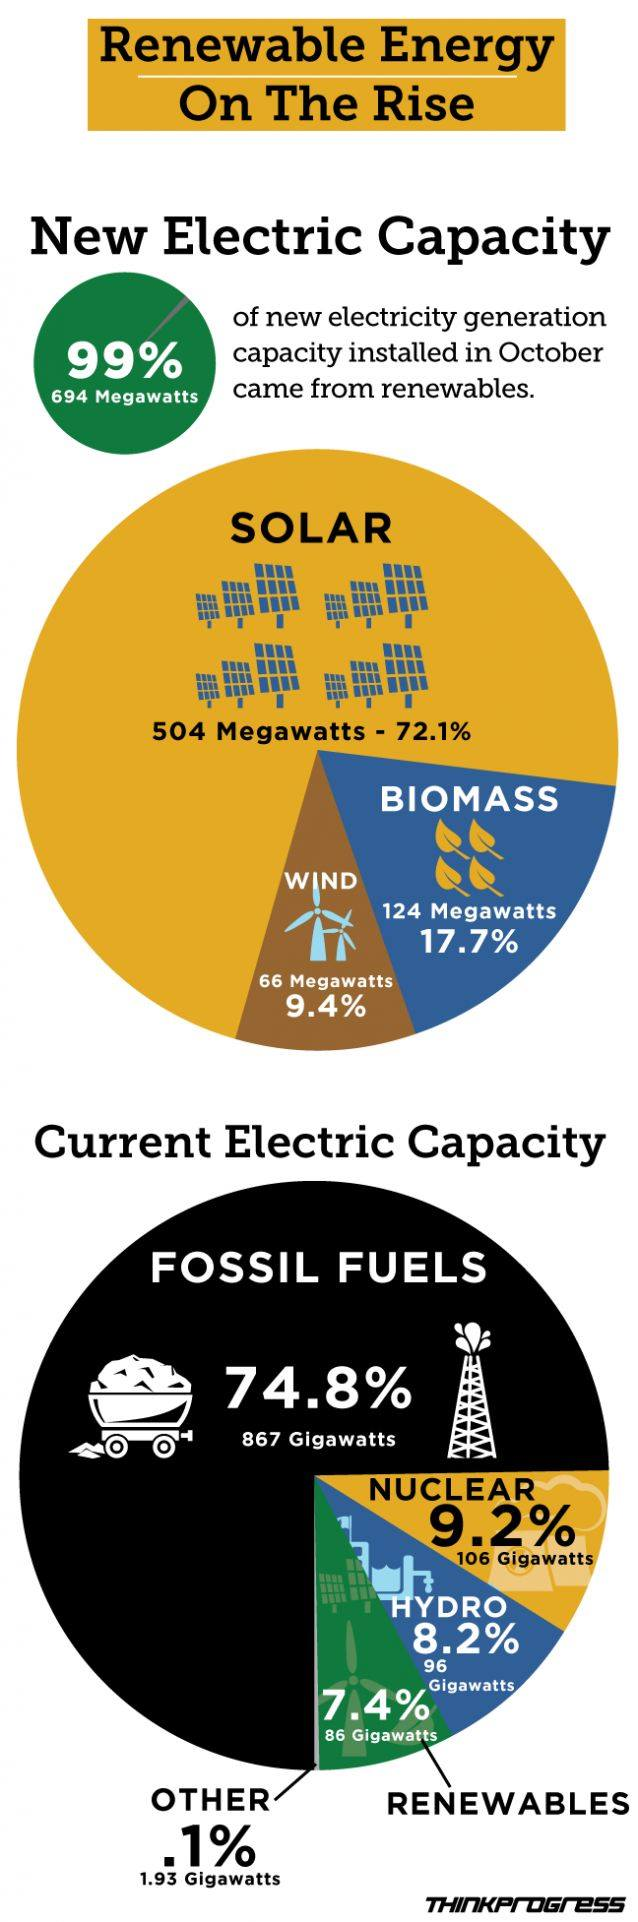 The potential of renewable energy and fossil fuels